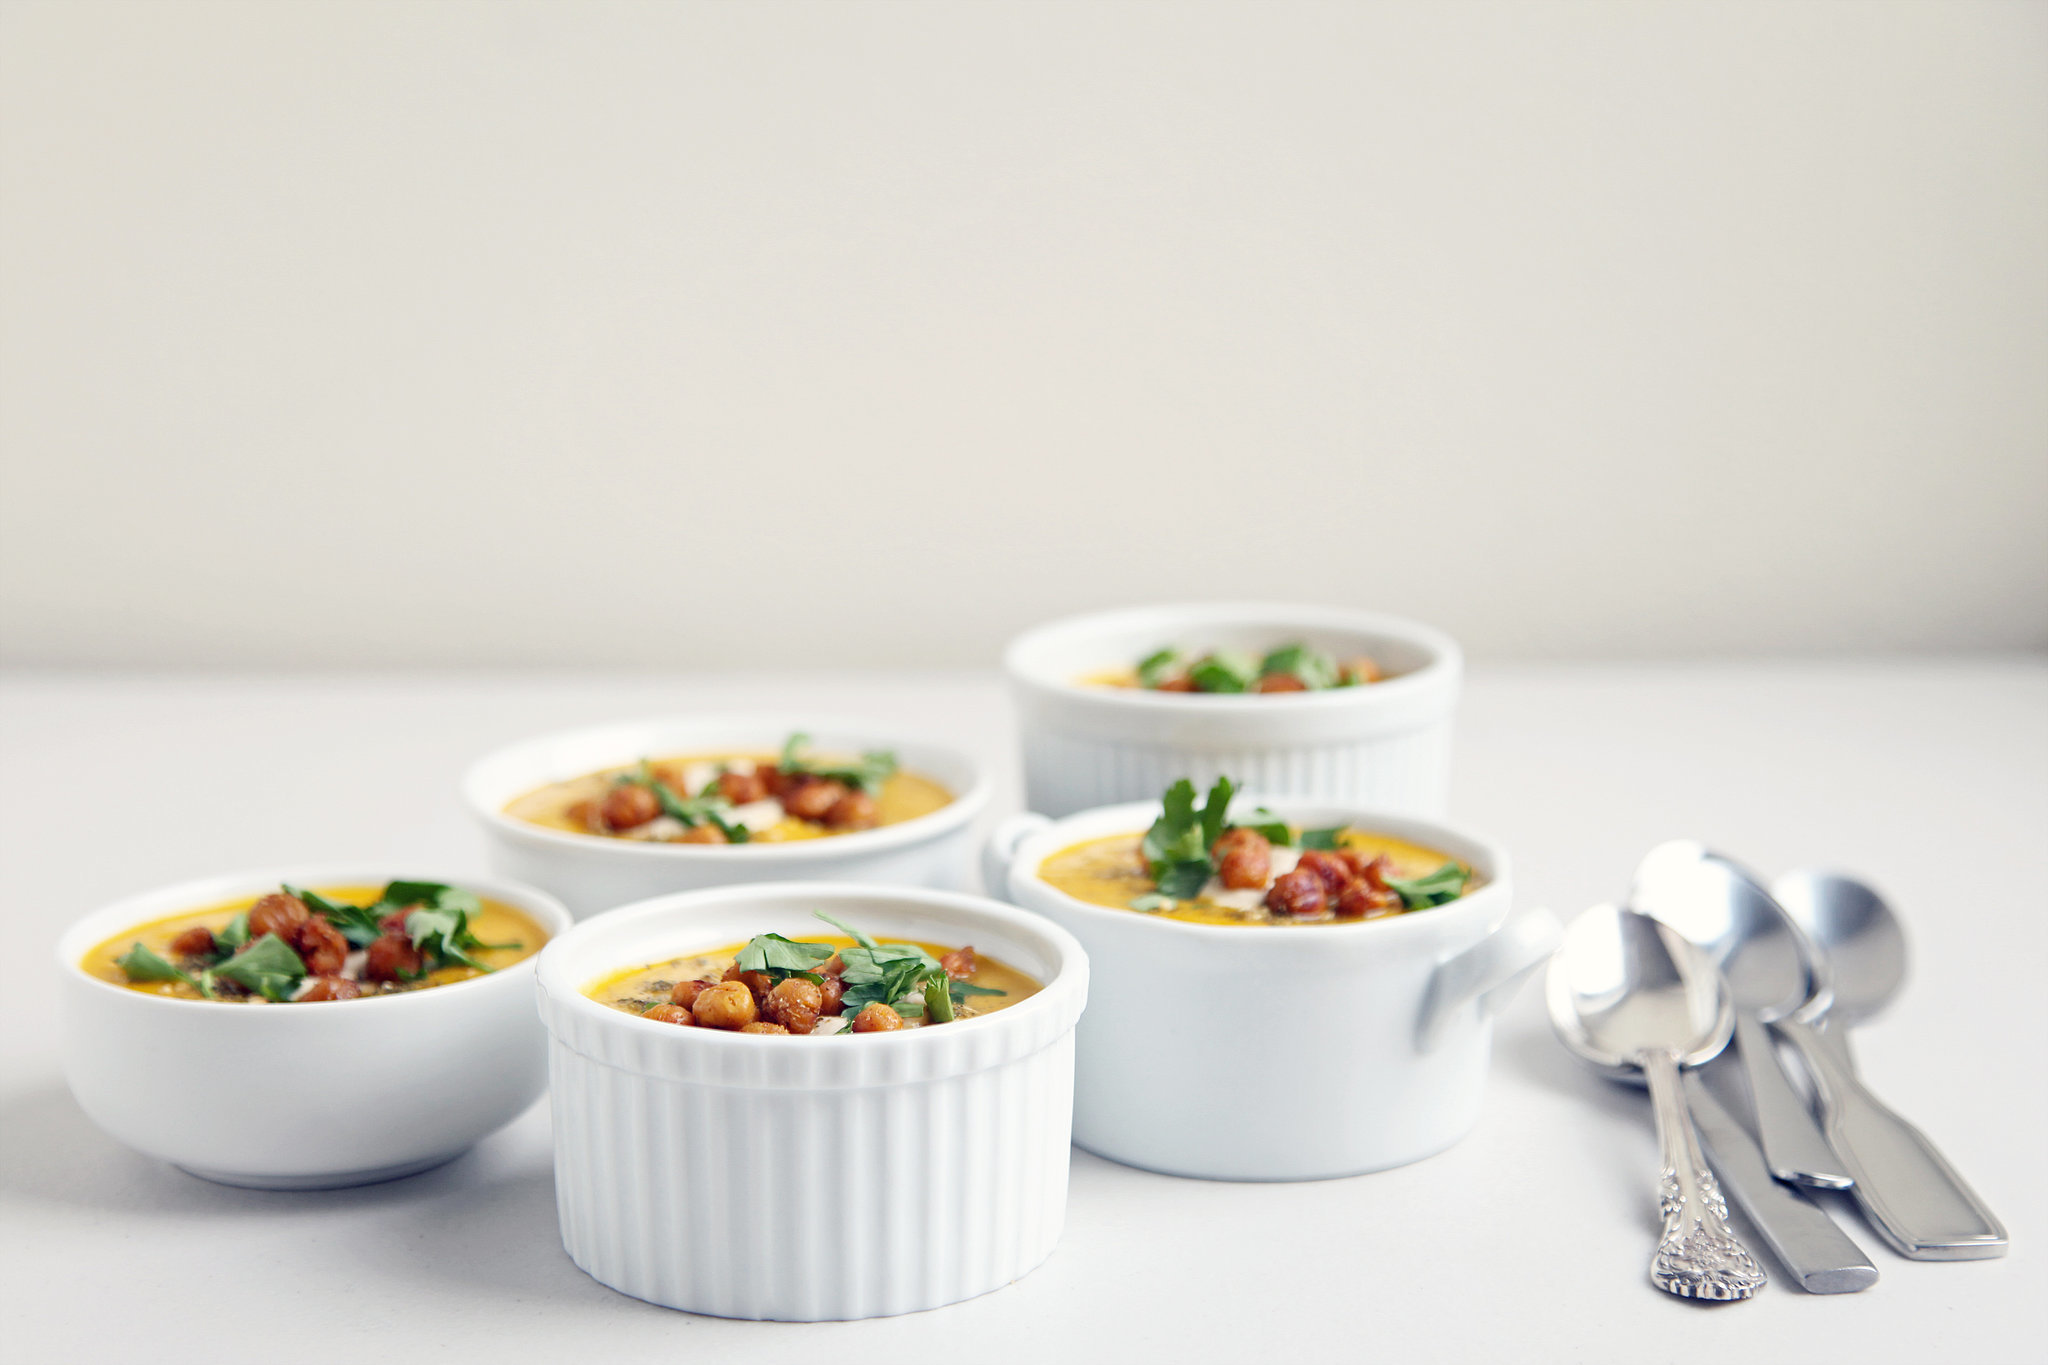 91e0b086a77630a1_Carrot-Soup-with-Tahini-and-Chickpeas.xxxlarge_2x.jpg